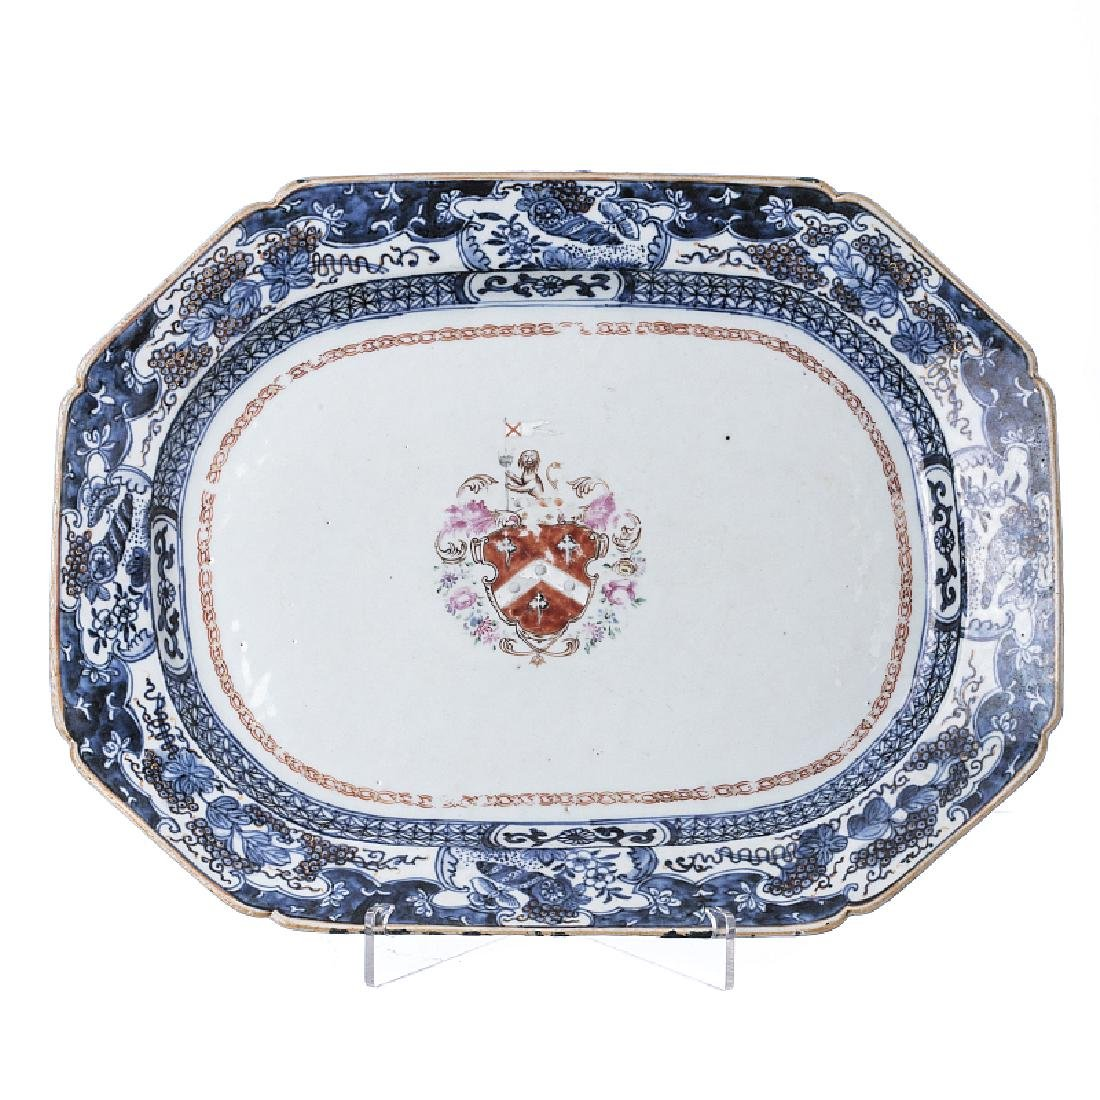 Armorial platter in Chinese porcelain